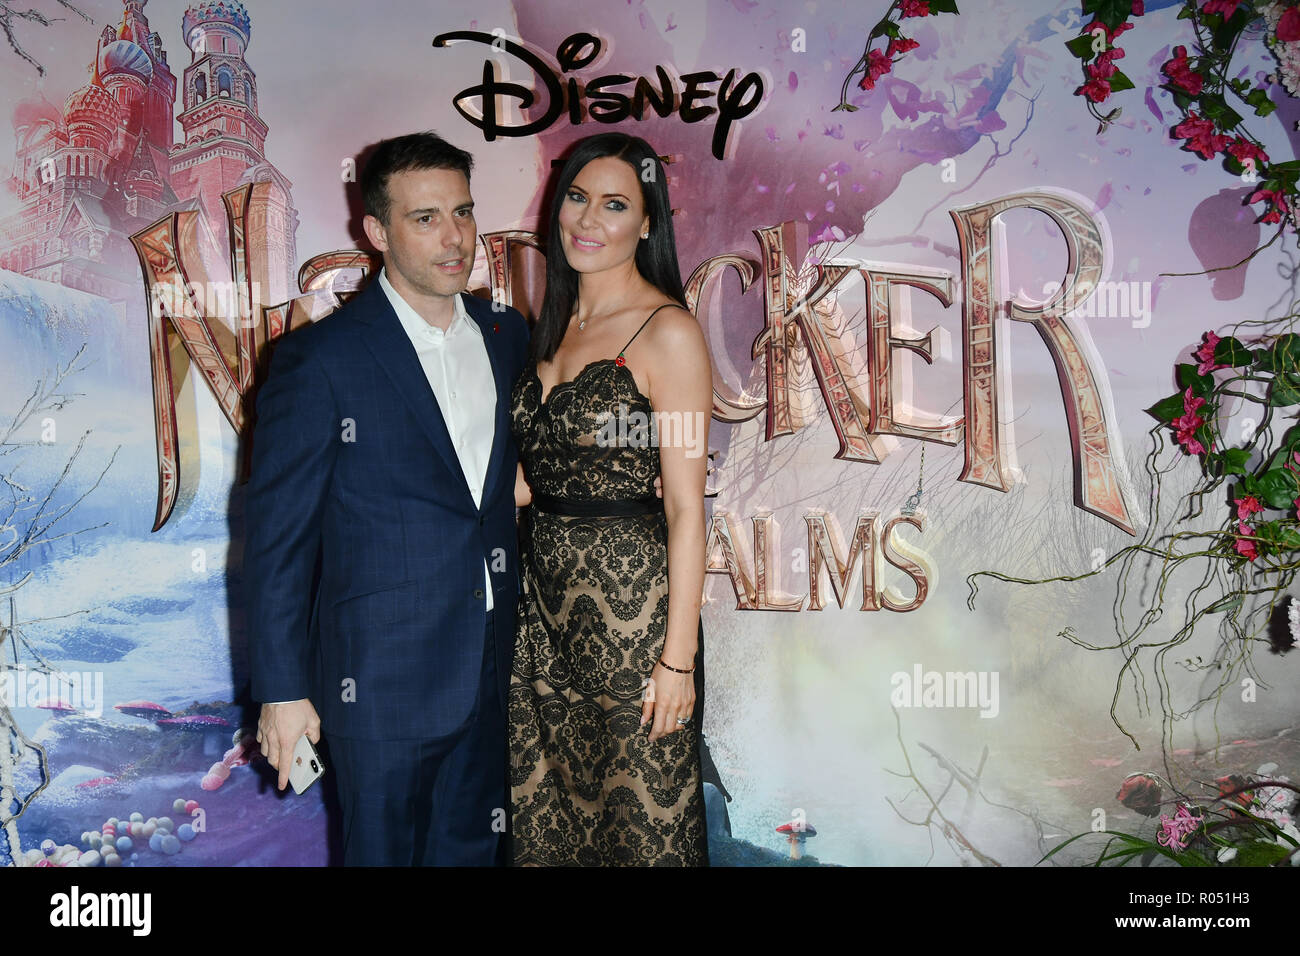 London, UK. 1st Nov 2018. Will Stoppard and Linzi Stoppard attend The Nutcracker and the Four Realms - UK premiere at Vue Westfield, Westfield Shopping Centre, Ariel Way on 1st Nov 2018, London, UK. Credit: Picture Capital/Alamy Live News - Stock Image